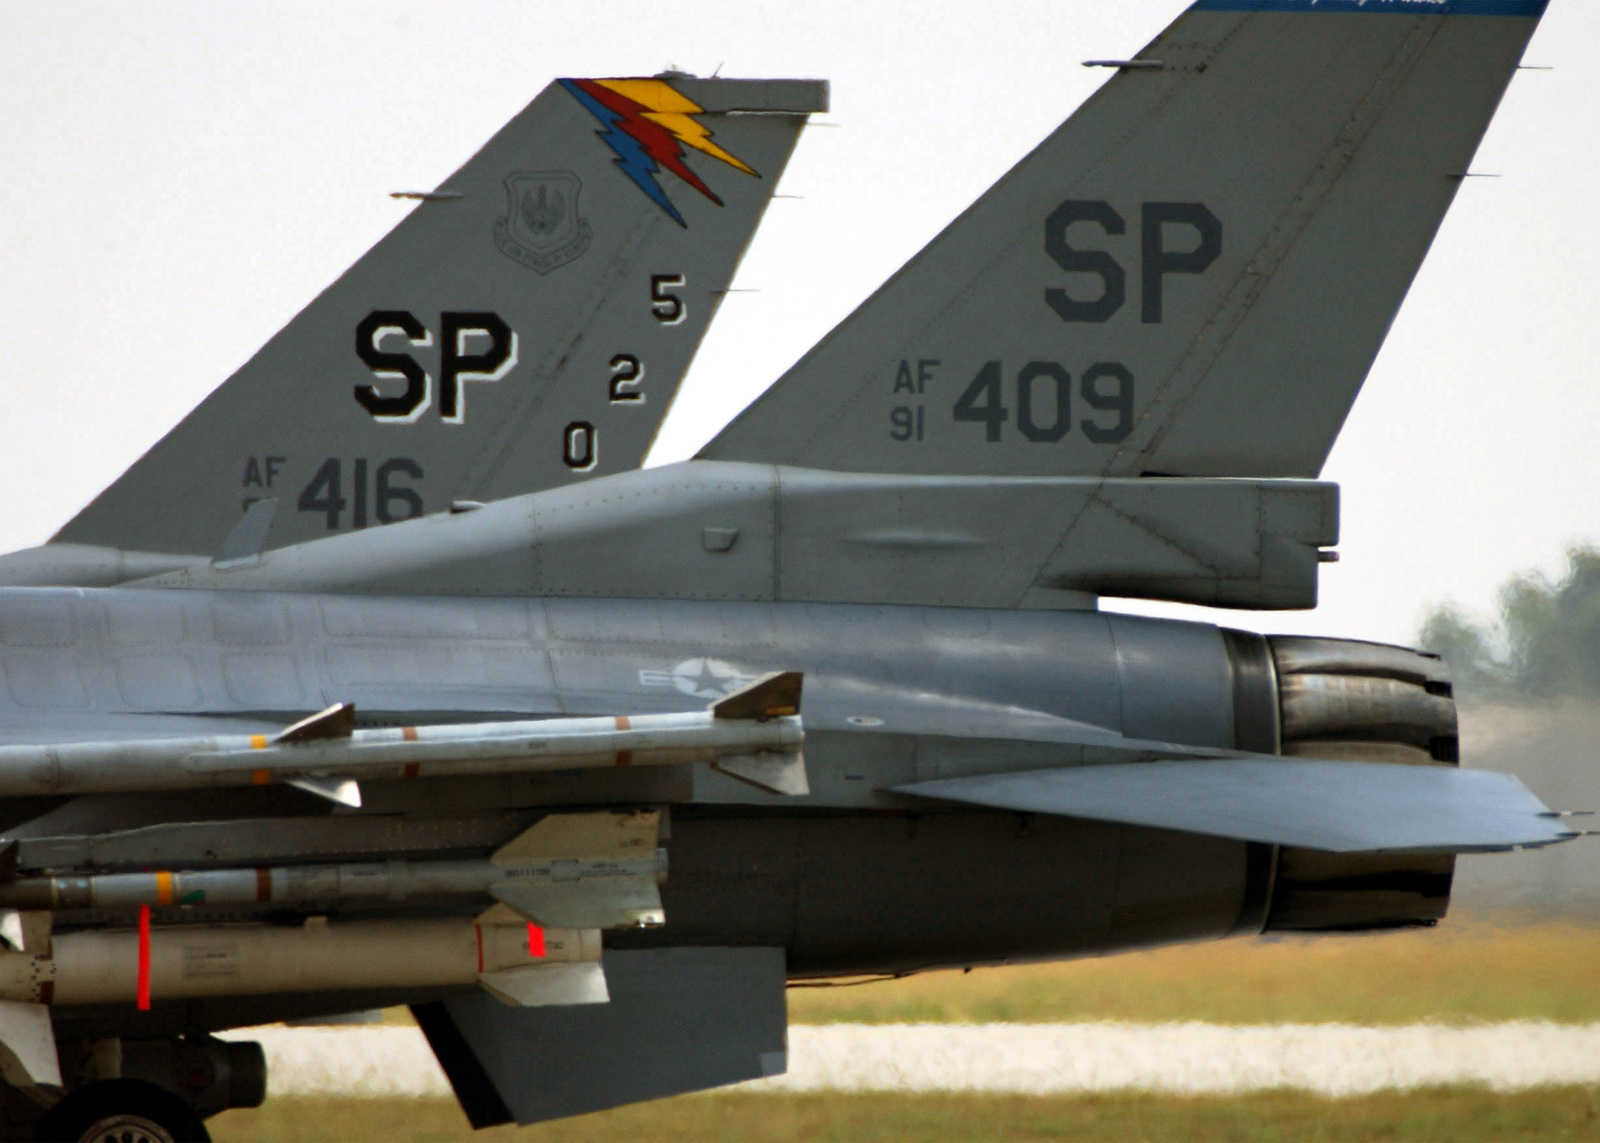 Two US Air Force (USAF) F-16 Fighting Falcon aircraft deployed from